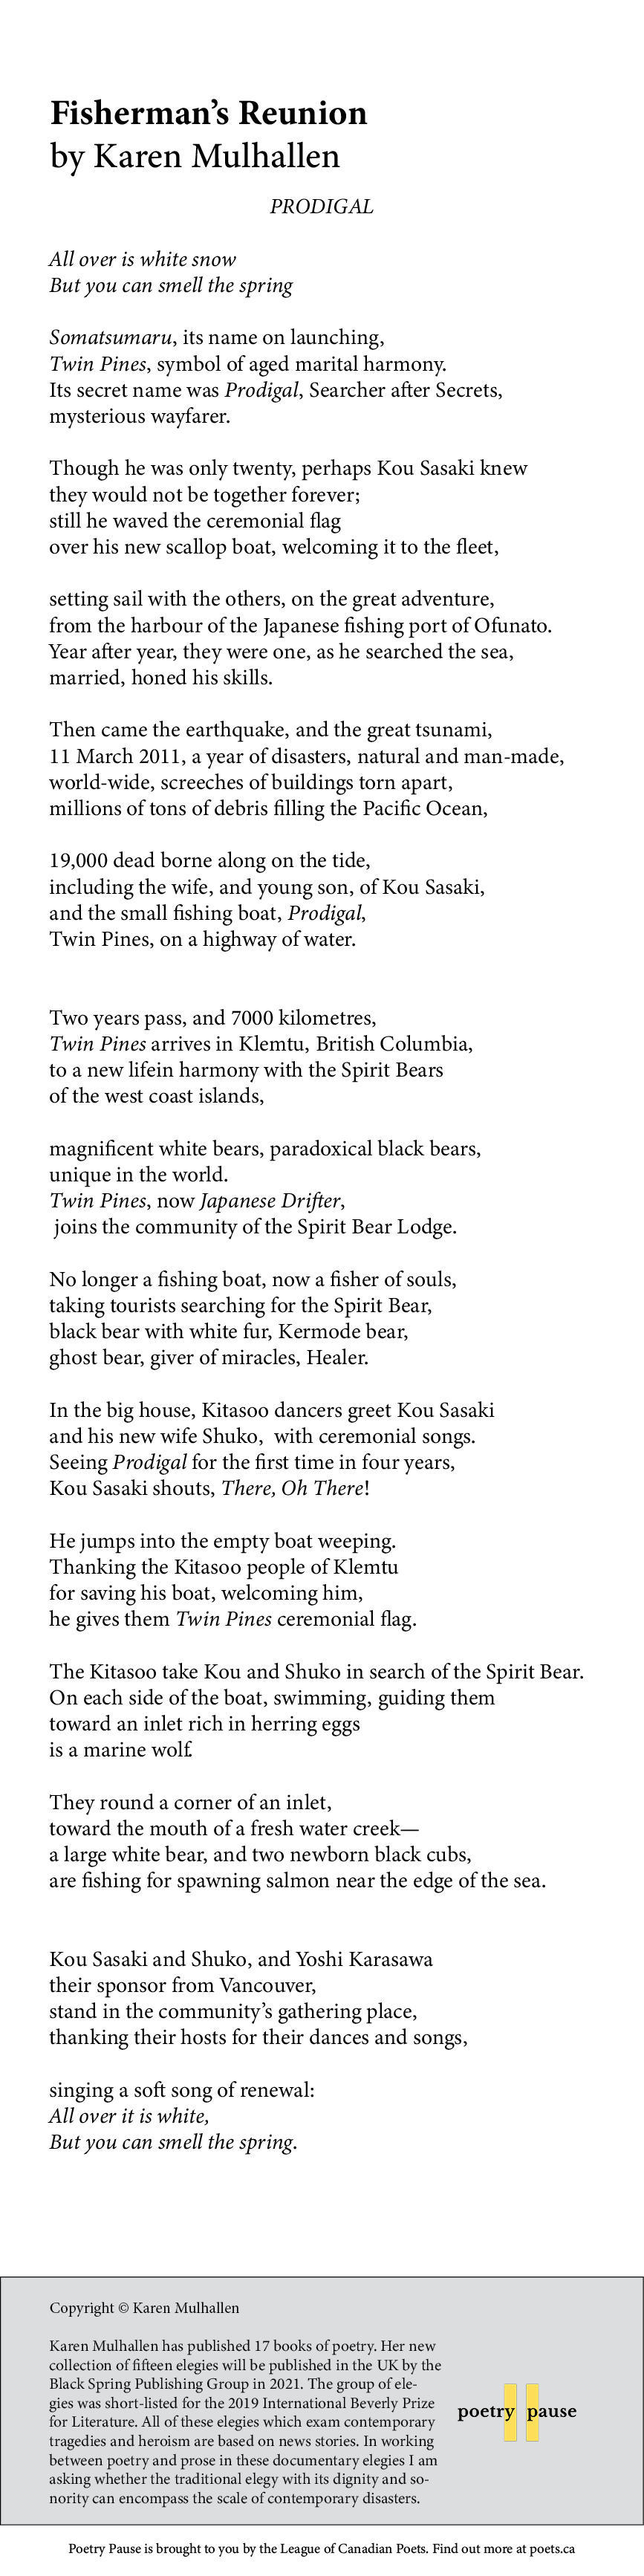 Poem title: Fisherman's Reunion Poet name:Karen Mulhallen Poem Begins: PRODIGAL All over is white snow But you can smell the spring Somatsumaru, its name on launching, Twin Pines, symbol of aged marital harmony. Its secret name was Prodigal, Searcher after Secrets, mysterious wayfarer. Though he was only twenty, perhaps Kou Sasaki knew they would not be together forever; still he waved the ceremonial flag over his new scallop boat, welcoming it to the fleet, setting sail with the others, on the great adventure, from the harbour of the Japanese fishing port of Ofunato. Year after year, they were one, as he searched the sea, married, honed his skills. Then came the earthquake, and the great tsunami, 11 March 2011, a year of disasters, natural and man-made, world-wide, screeches of buildings torn apart, millions of tons of debris filling the Pacific Ocean, 19,000 dead borne along on the tide, including the wife, and young son, of Kou Sasaki, and the small fishing boat, Prodigal, Twin Pines, on a highway of water. Two years pass, and 7000 kilometres, Twin Pines arrives in Klemtu, British Columbia, to a new lifein harmony with the Spirit Bears of the west coast islands, magnificent white bears, paradoxical black bears, unique in the world. Twin Pines, now Japanese Drifter, joins the community of the Spirit Bear Lodge. No longer a fishing boat, now a fisher of souls, taking tourists searching for the Spirit Bear, black bear with white fur, Kermode bear, ghost bear, giver of miracles, Healer. In the big house, Kitasoo dancers greet Kou Sasaki and his new wife Shuko, with ceremonial songs. Seeing Prodigal for the first time in four years, Kou Sasaki shouts, There, Oh There! He jumps into the empty boat weeping. Thanking the Kitasoo people of Klemtu for saving his boat, welcoming him, he gives them Twin Pines ceremonial flag. The Kitasoo take Kou and Shuko in search of the Spirit Bear. On each side of the boat, swimming, guiding them toward an inlet rich in herring eggs is a